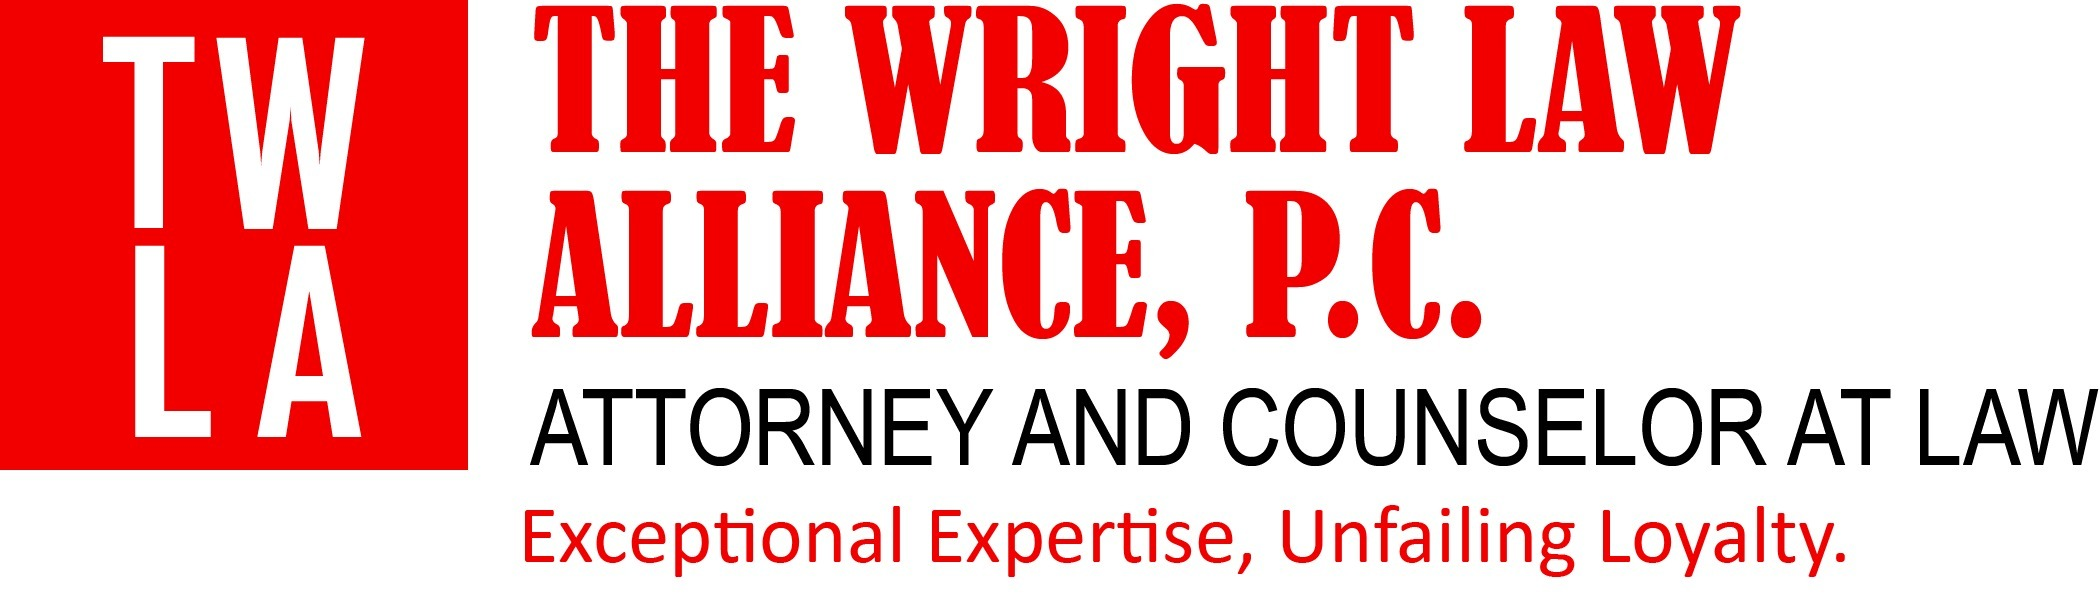 The Wright Law Alliance (@wrightbklaw) Cover Image